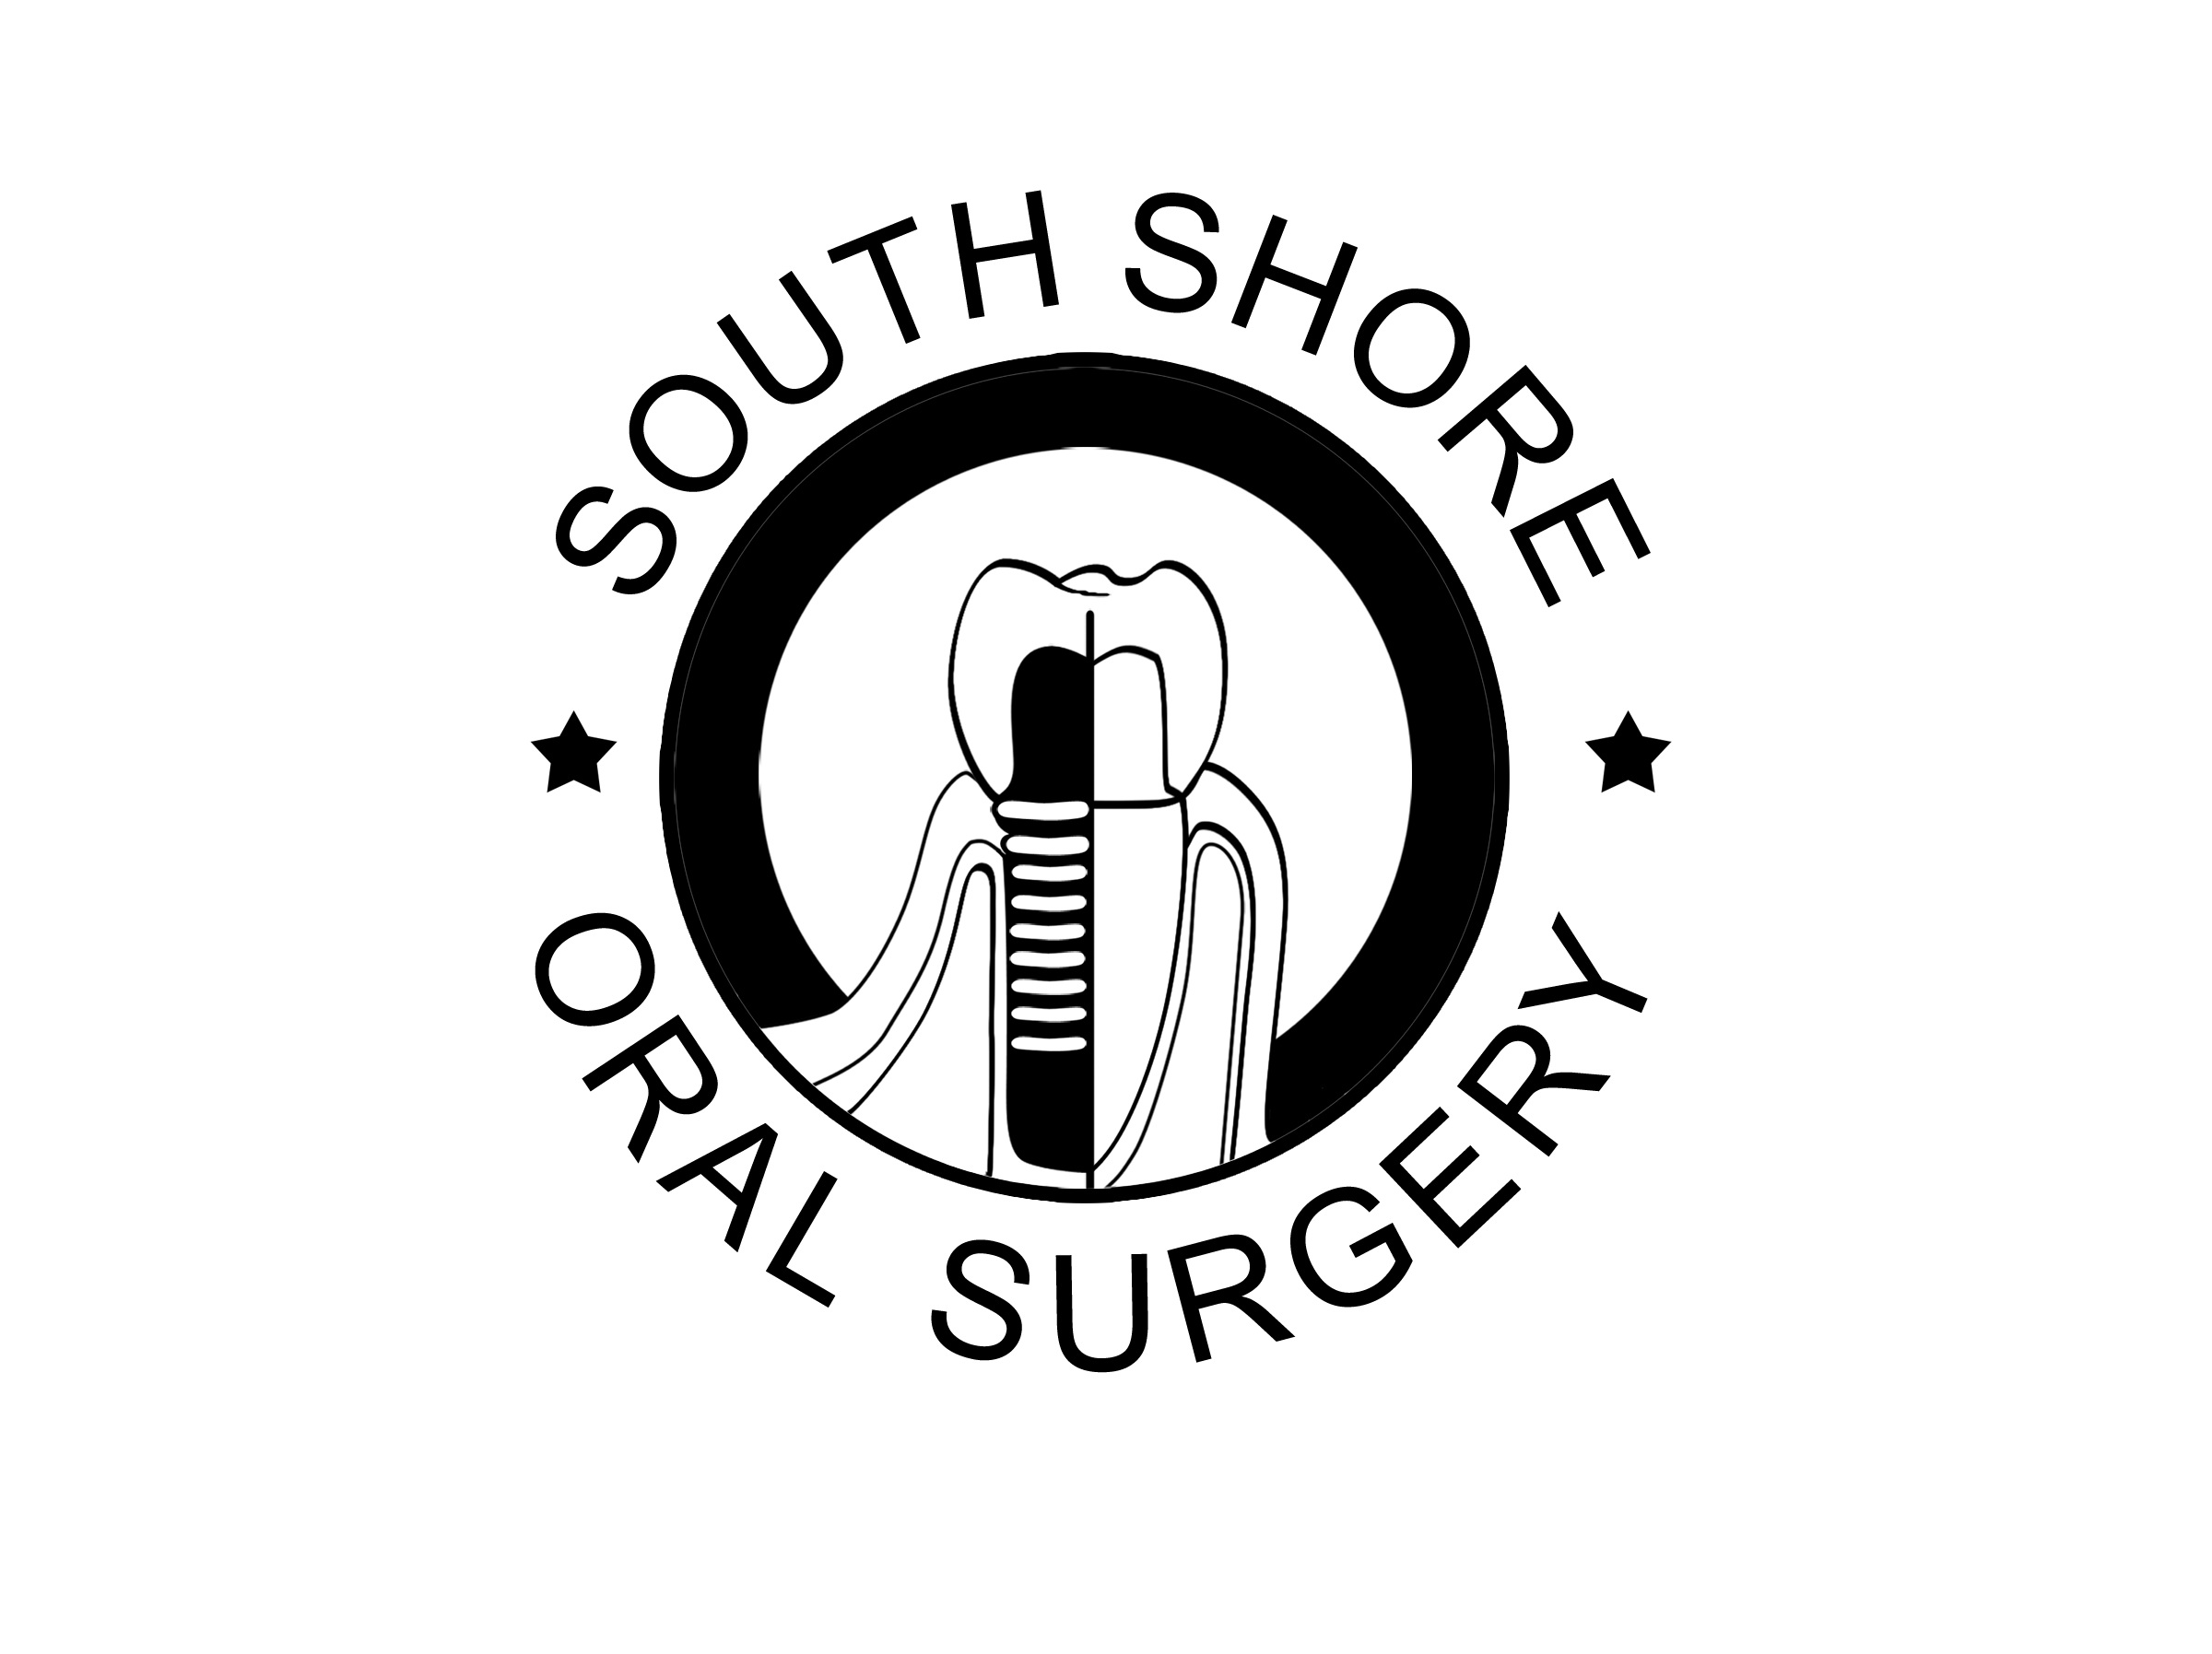 South Shore Oral Surgery